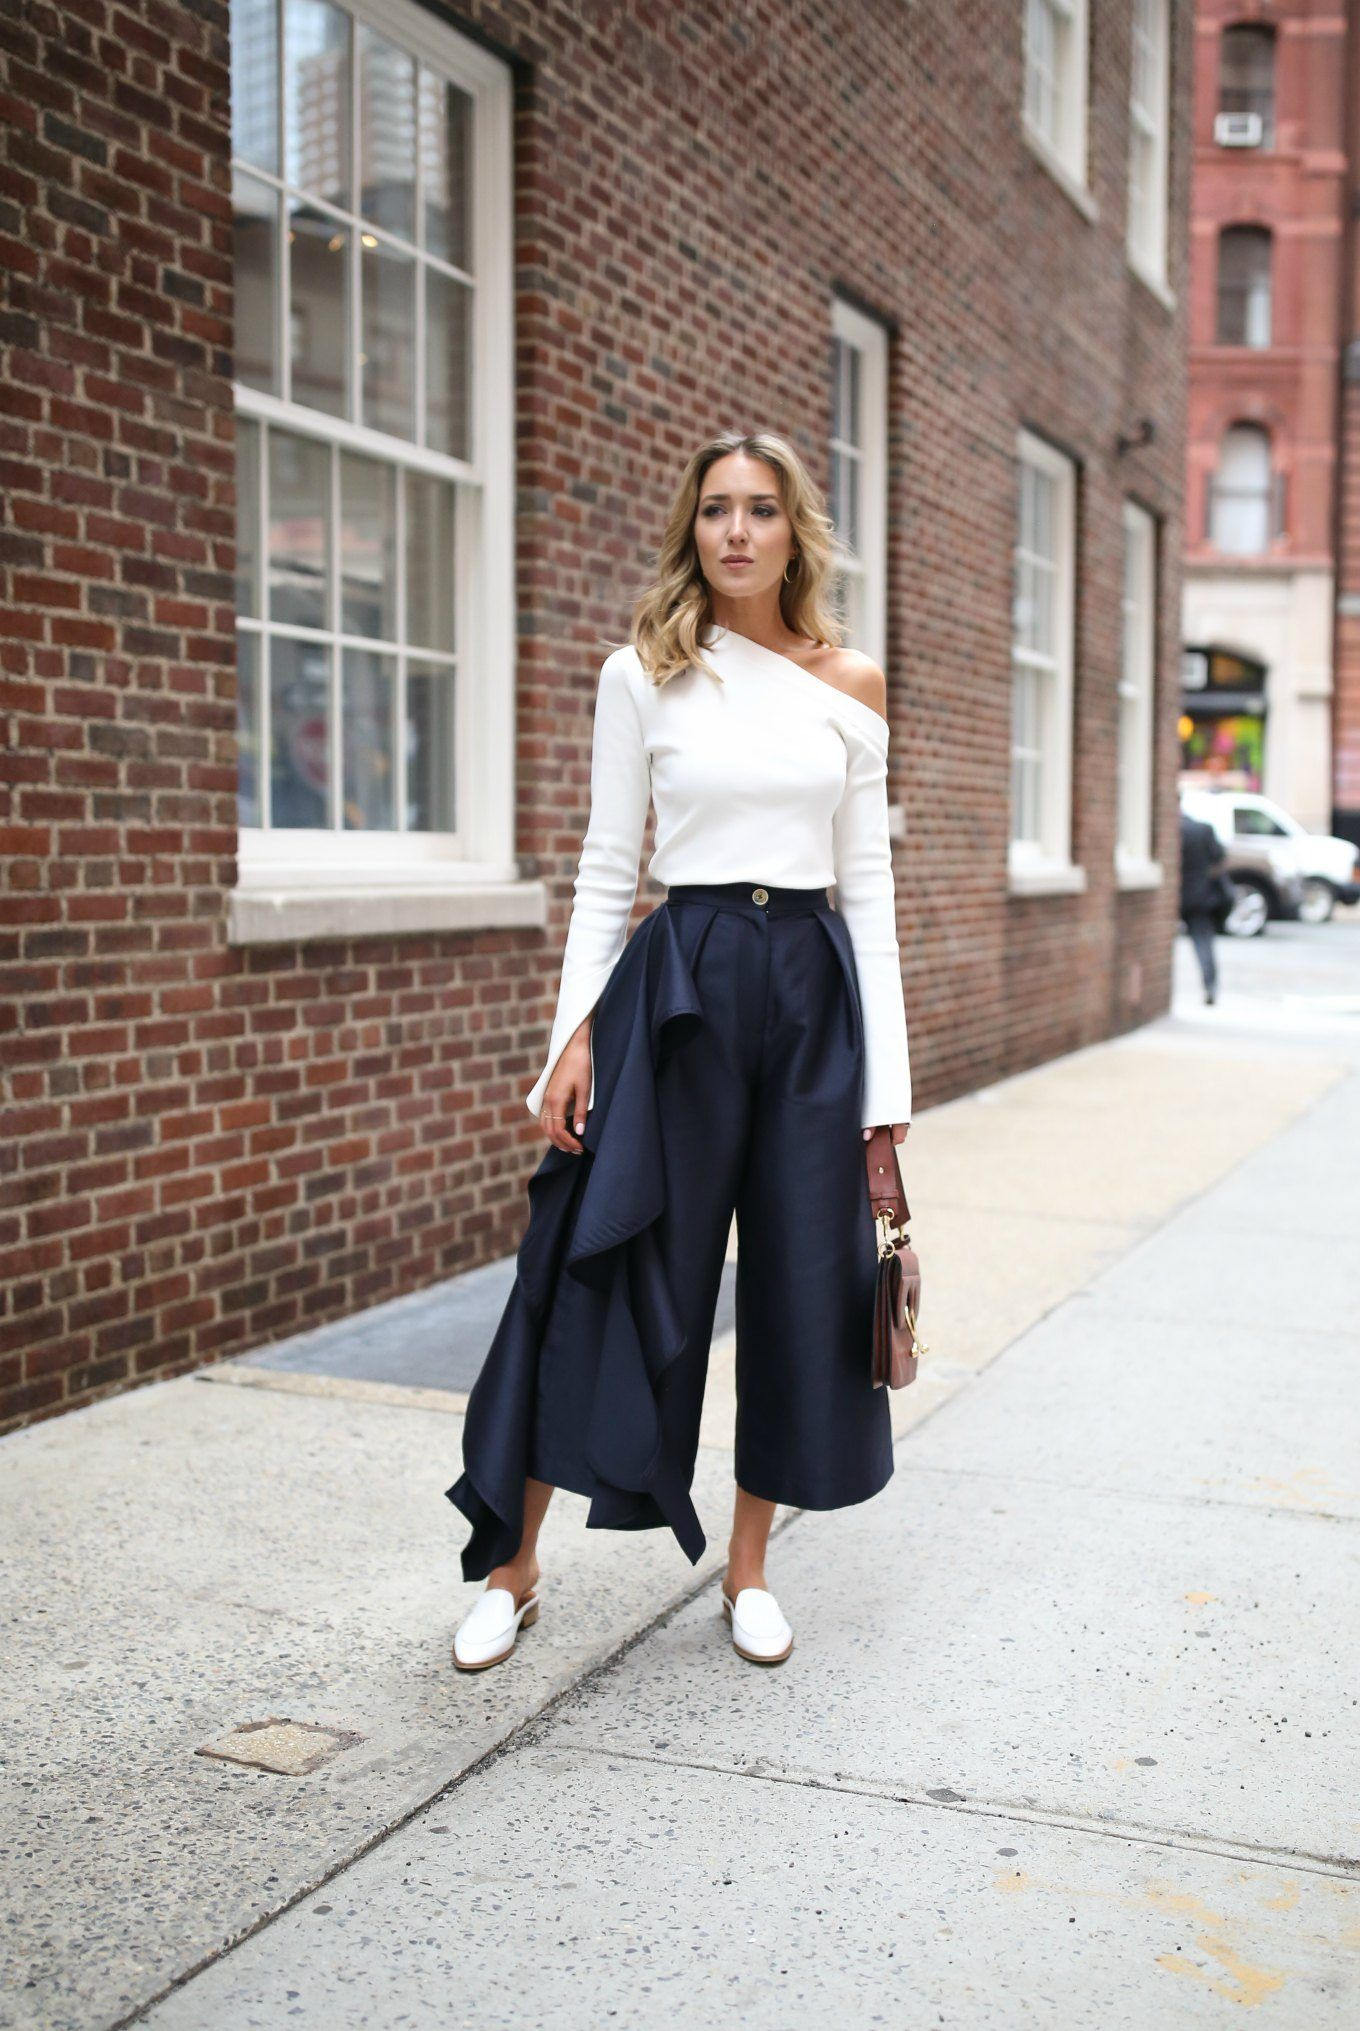 One-shoulder top and culottes